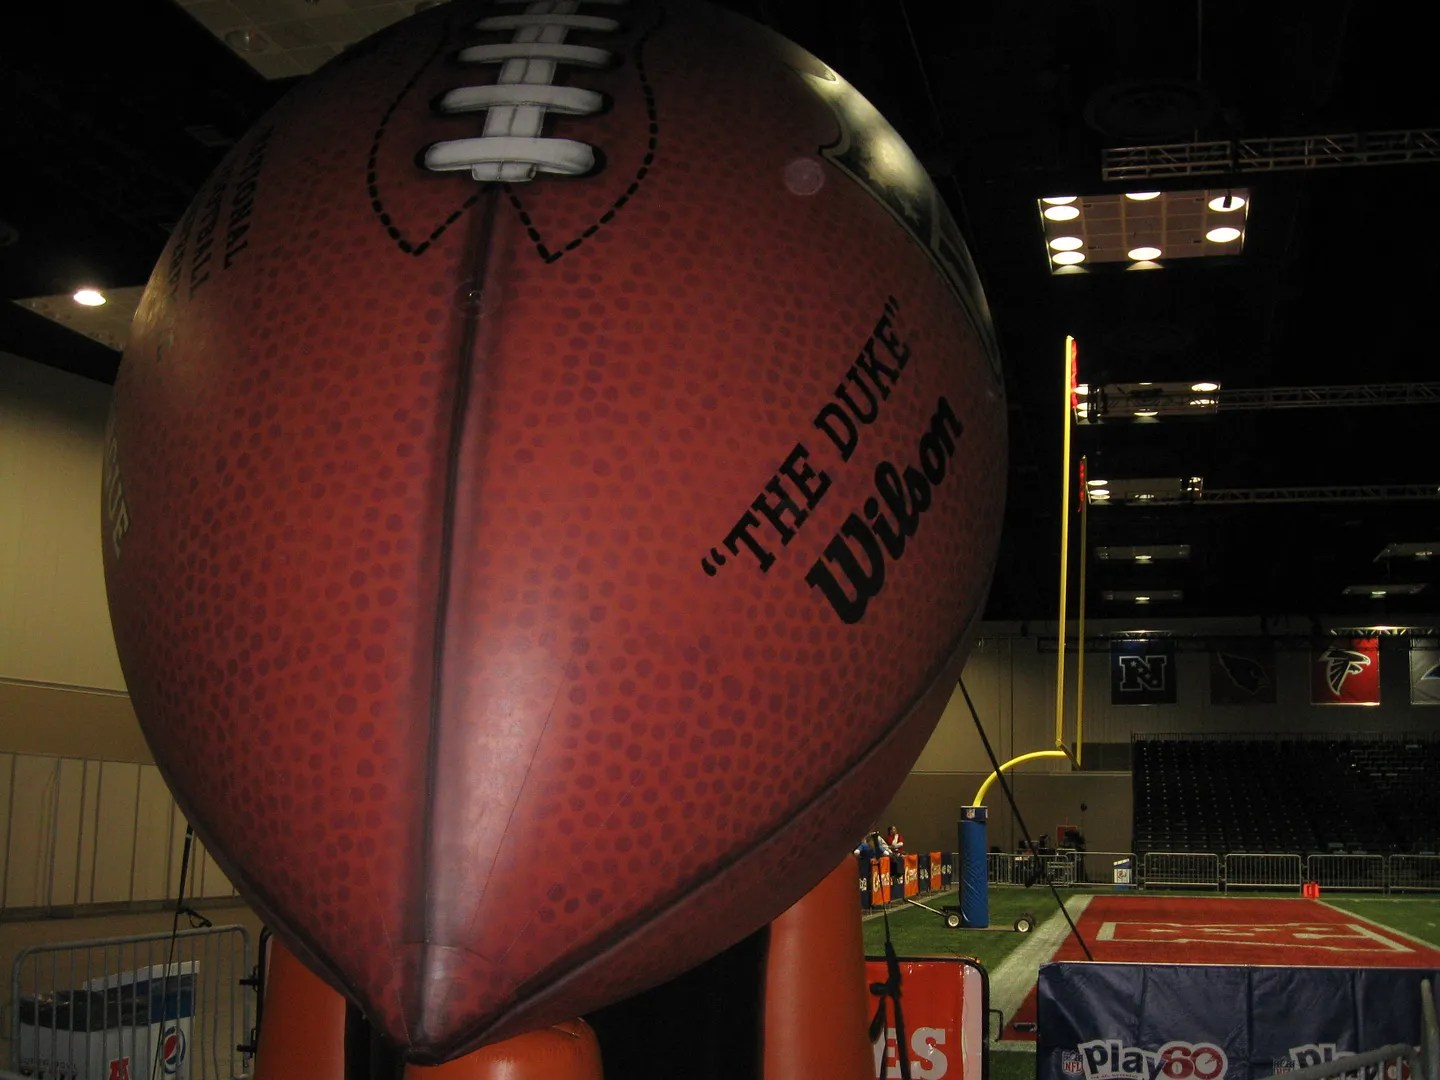 giant inflatable football, Super Bowl XLVI